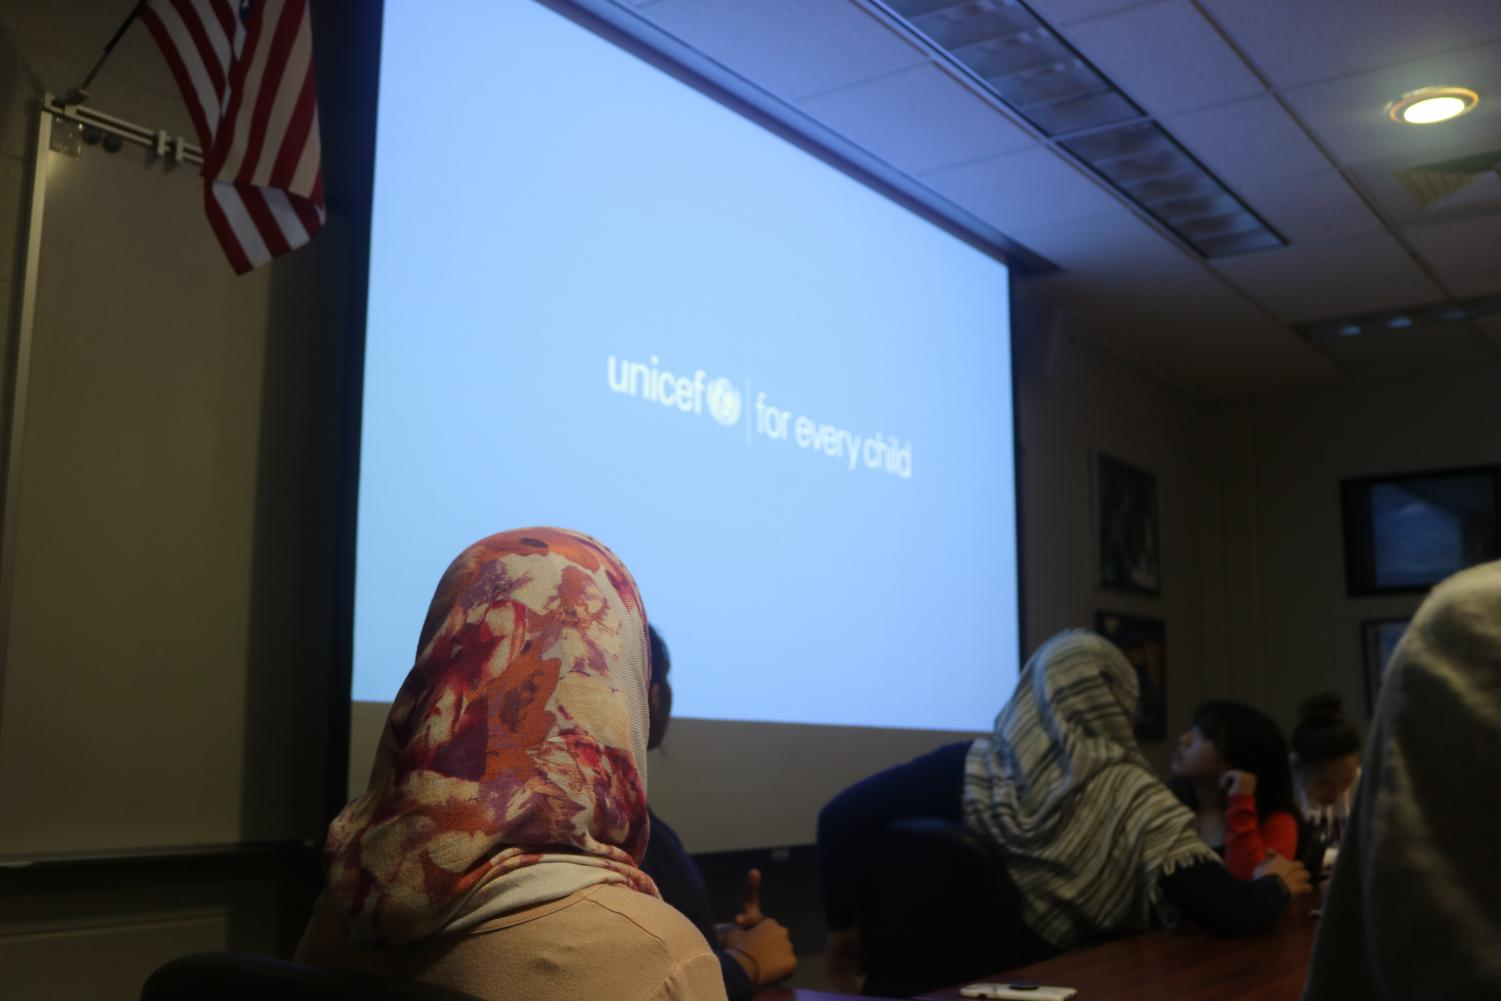 Students interested in UNICEF watch an informational video about how the organization helps children around the world.